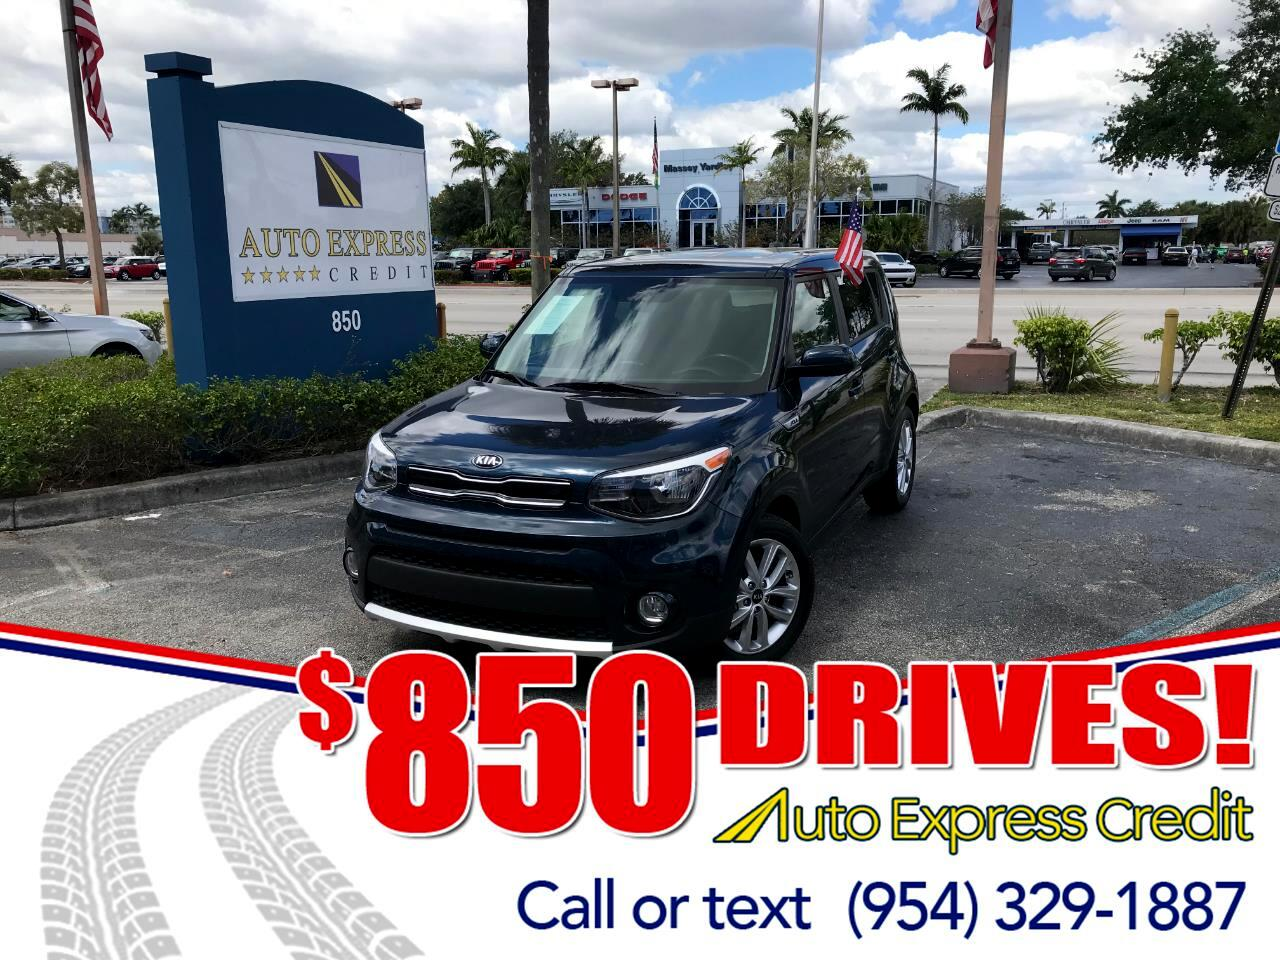 Used 2018 Kia Soul For Sale In Plantation FL 33317 Auto Express Credit